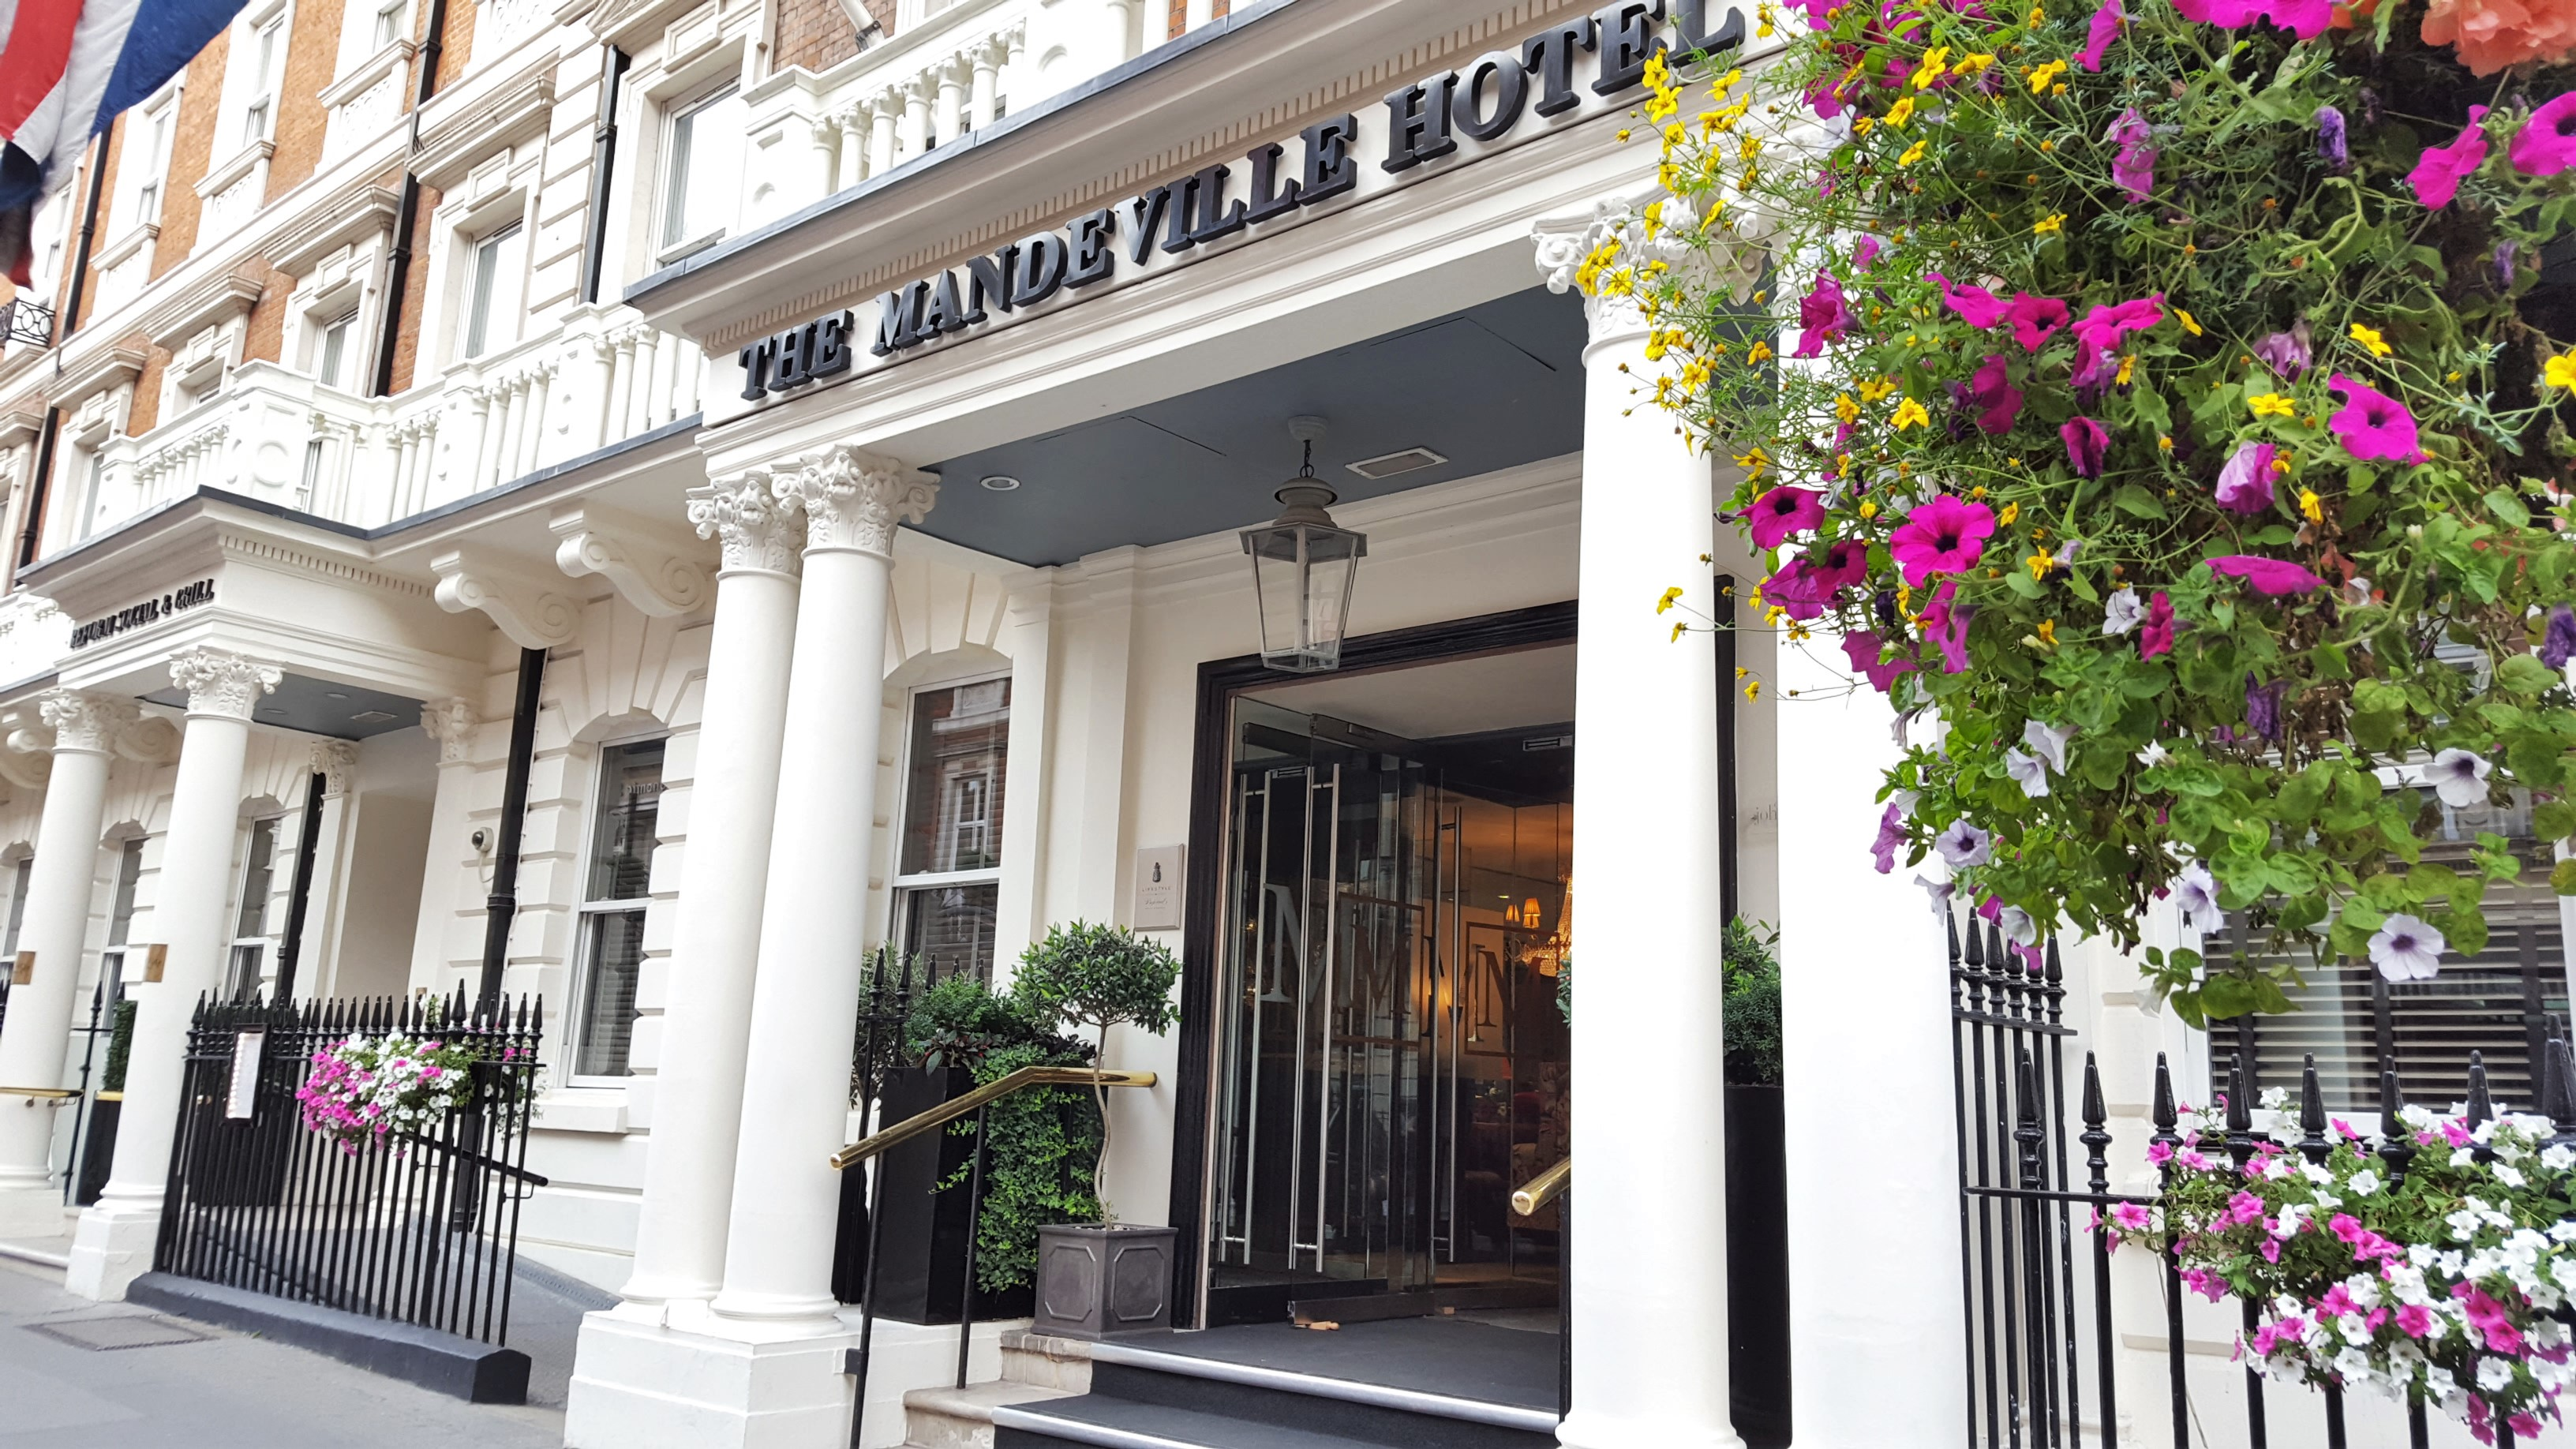 Reform Social, Mandeville Hotel Review